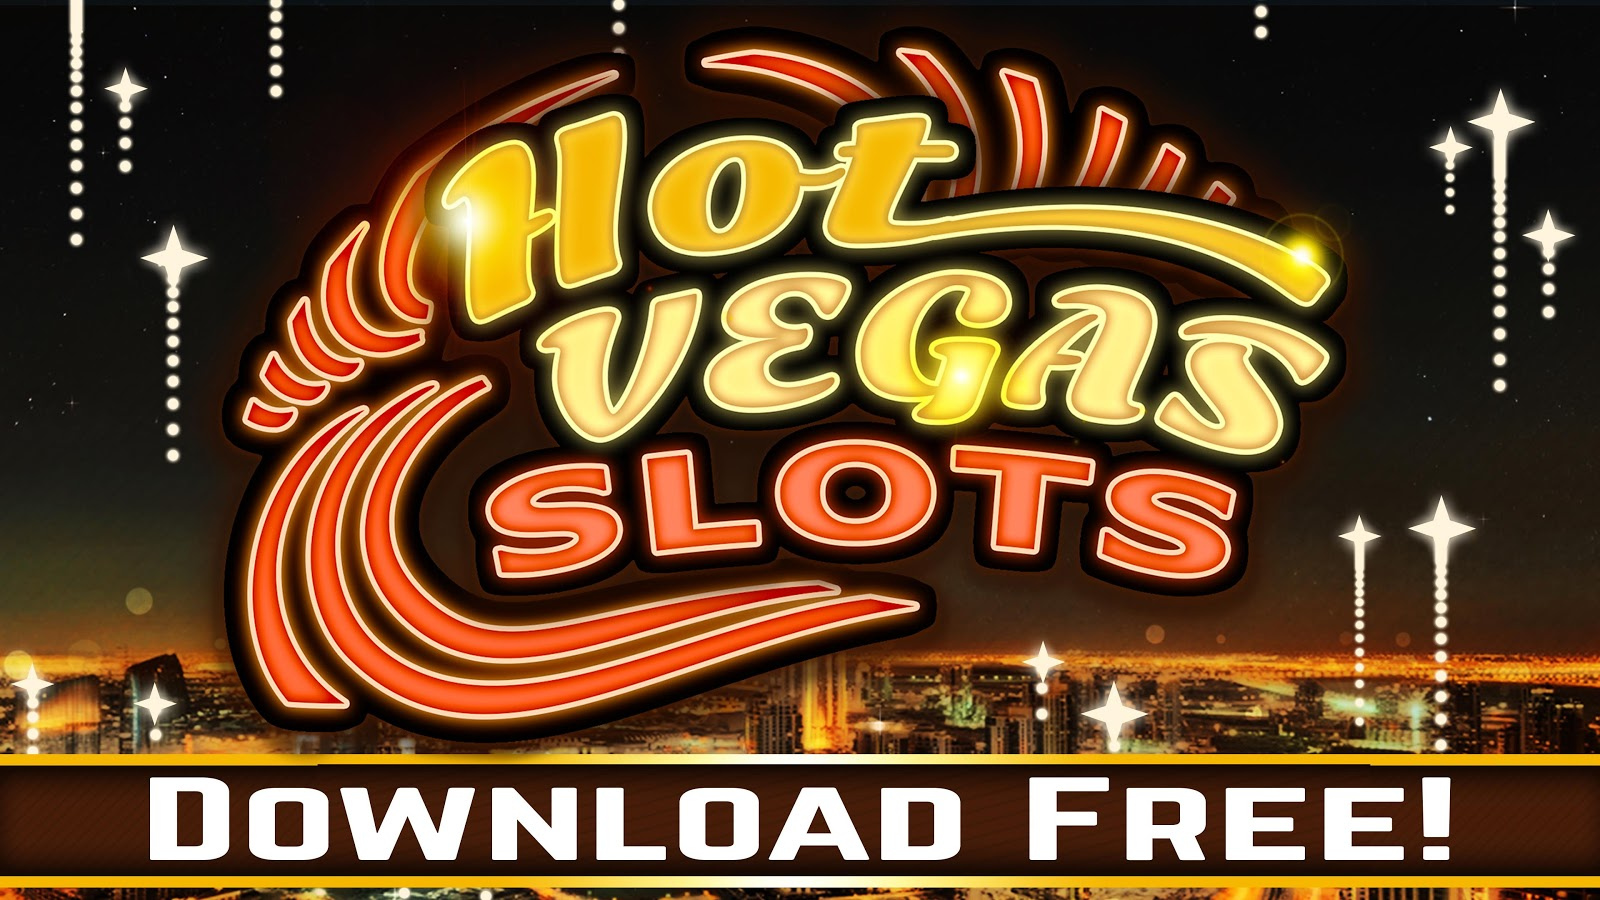 Wisps Slots - Try it Online for Free or Real Money